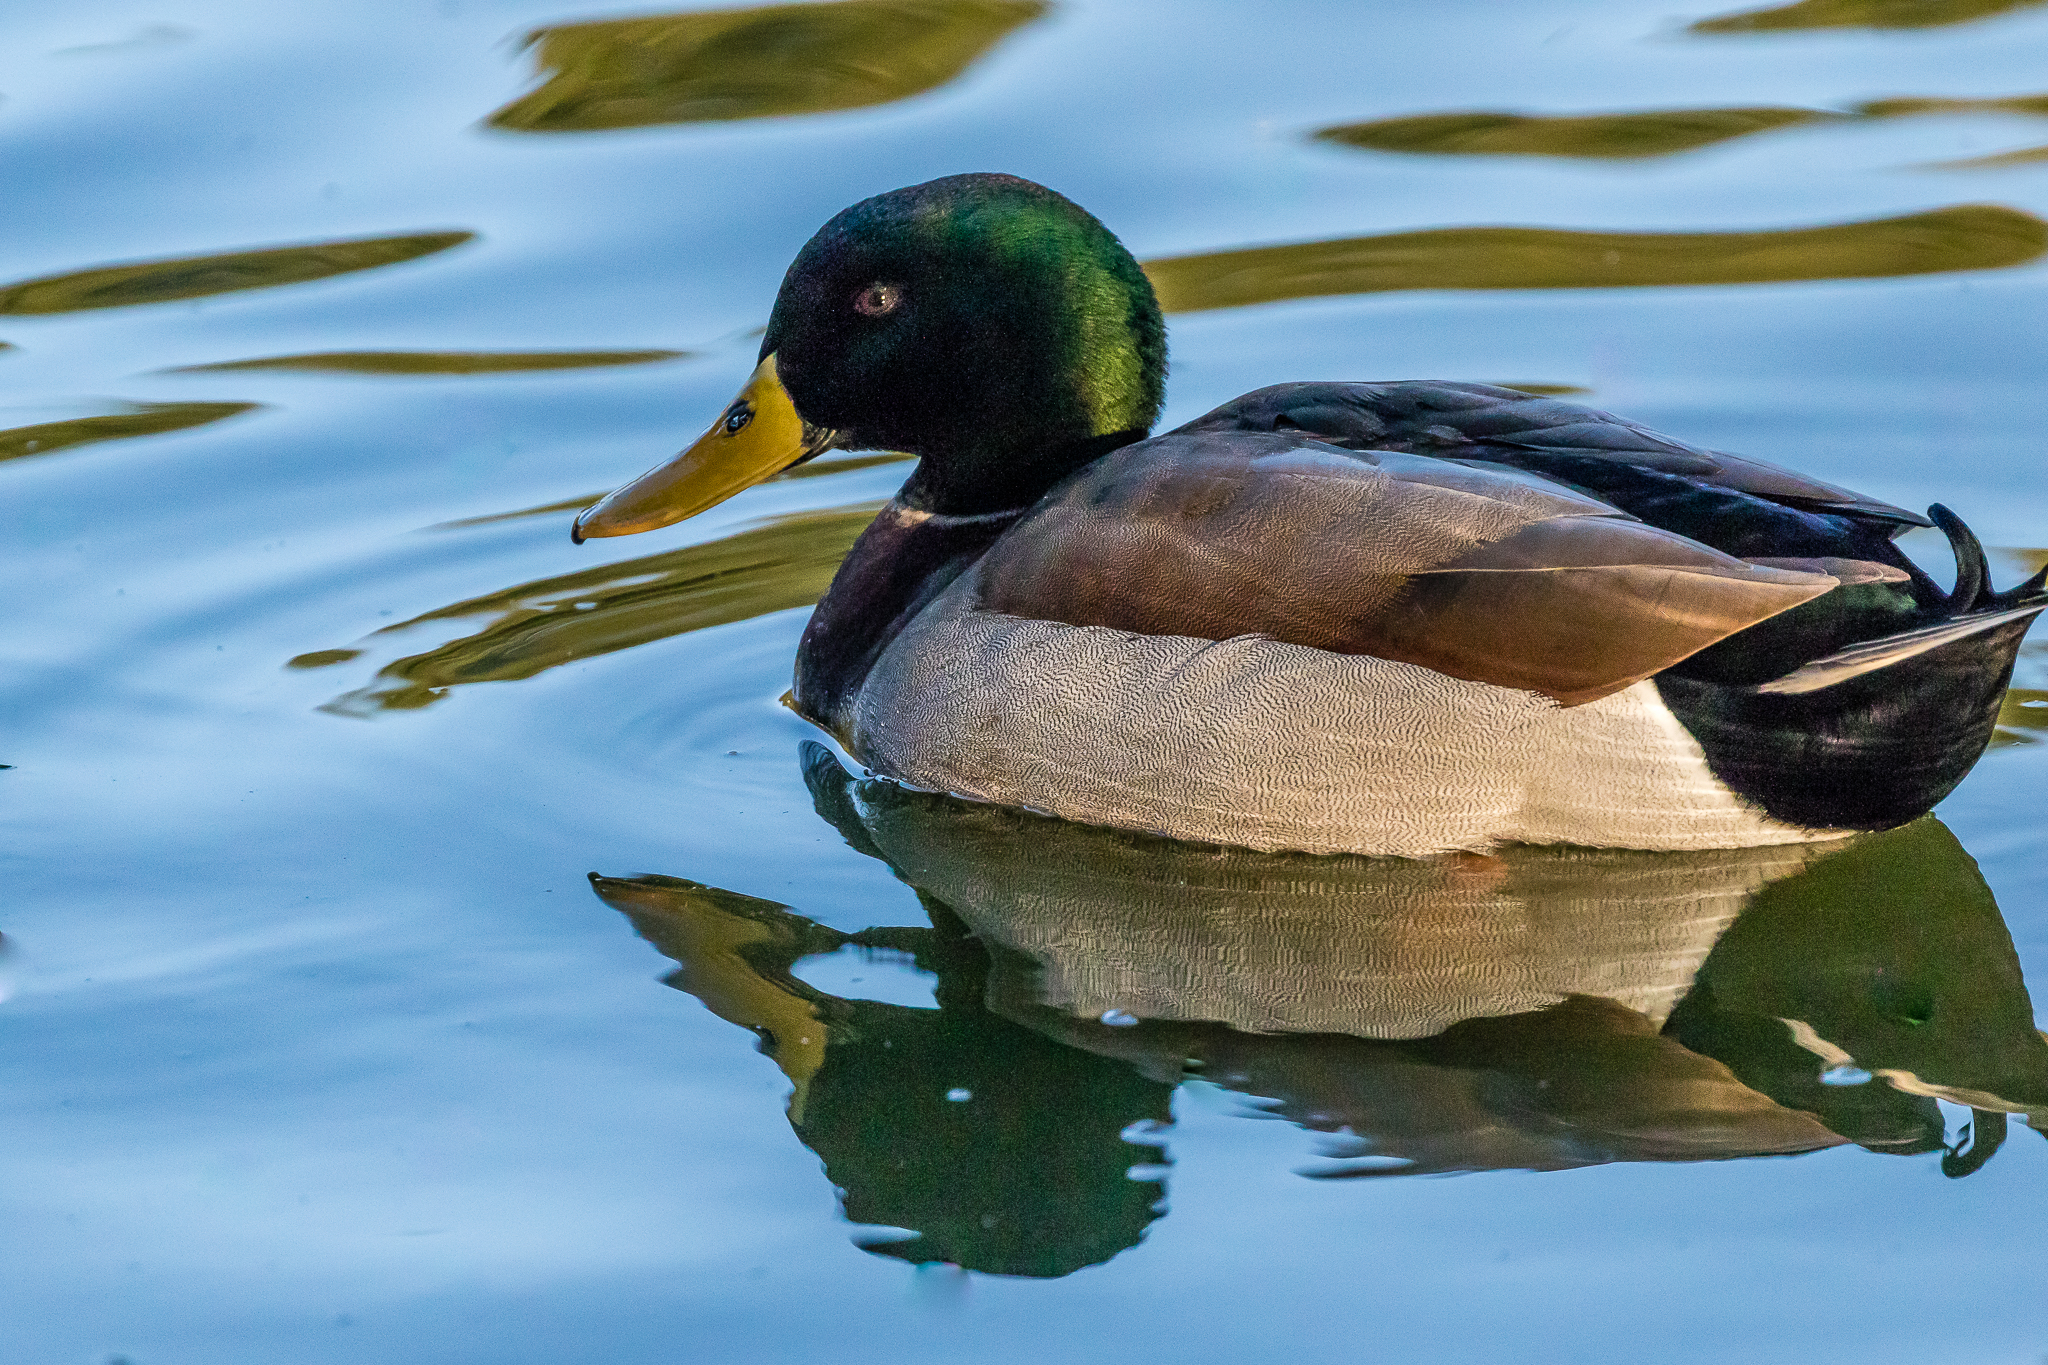 The Mallard (70 cm) is an introduced duck that has inhabited the south-east corner of Australia. Mainly vegetarian diet.